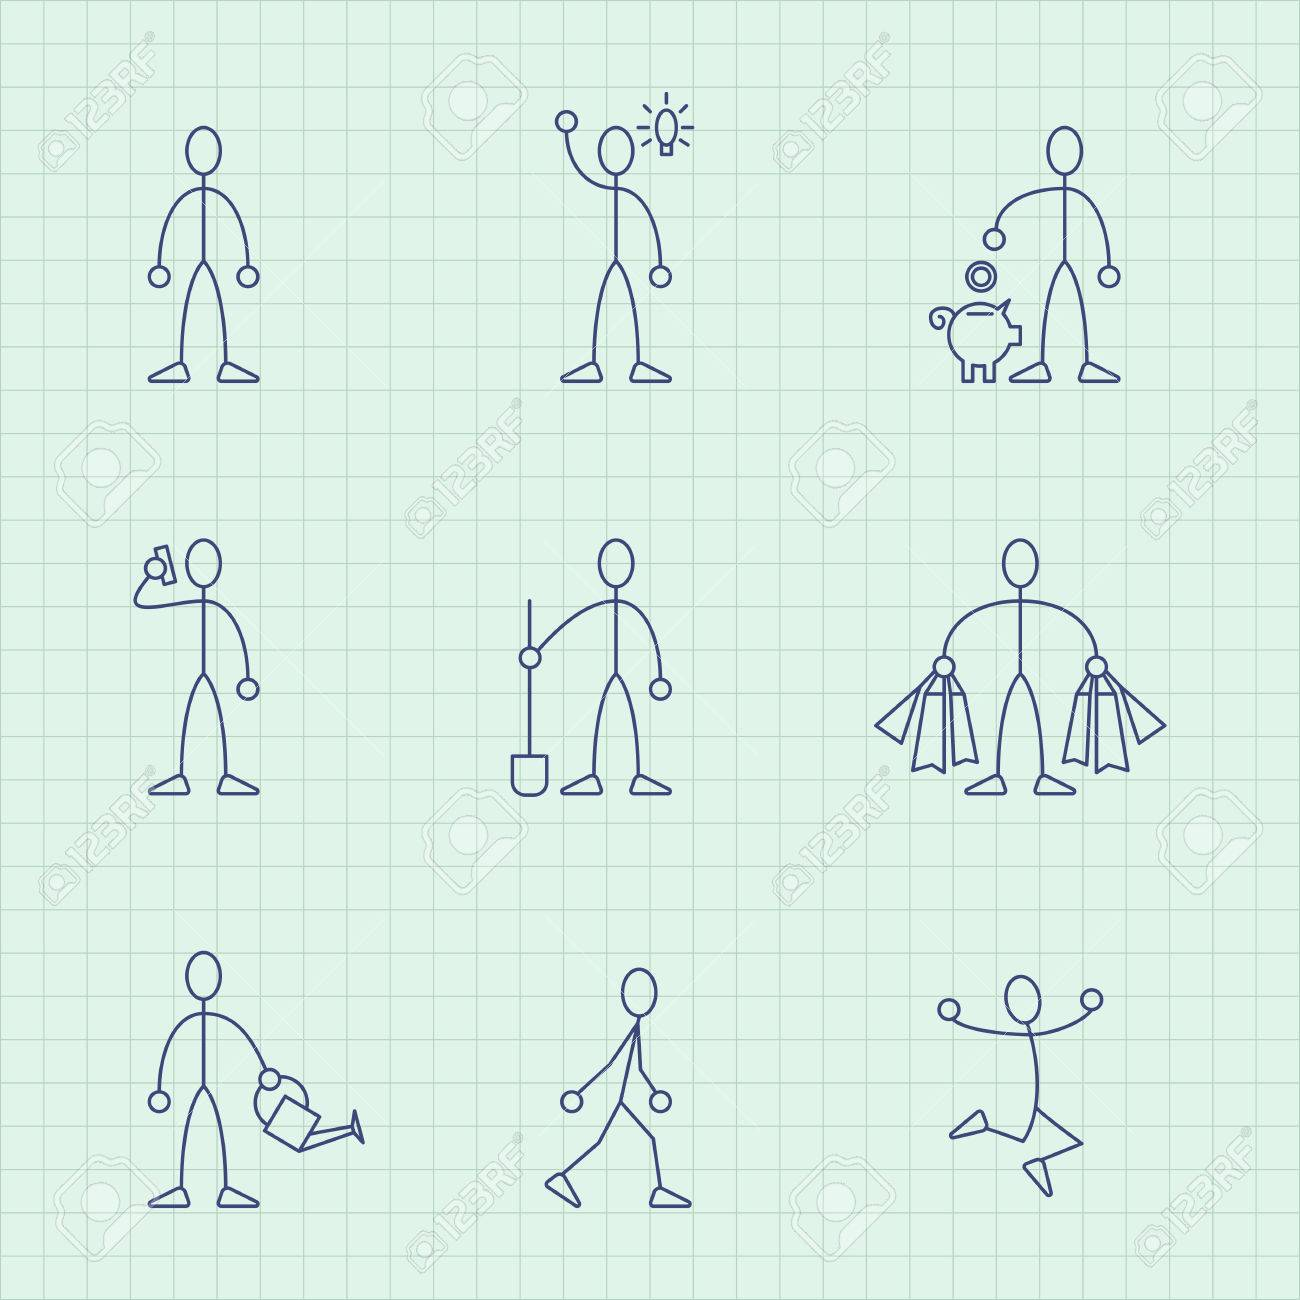 Vector drawing from lines of simple little men in different situations - 83541606